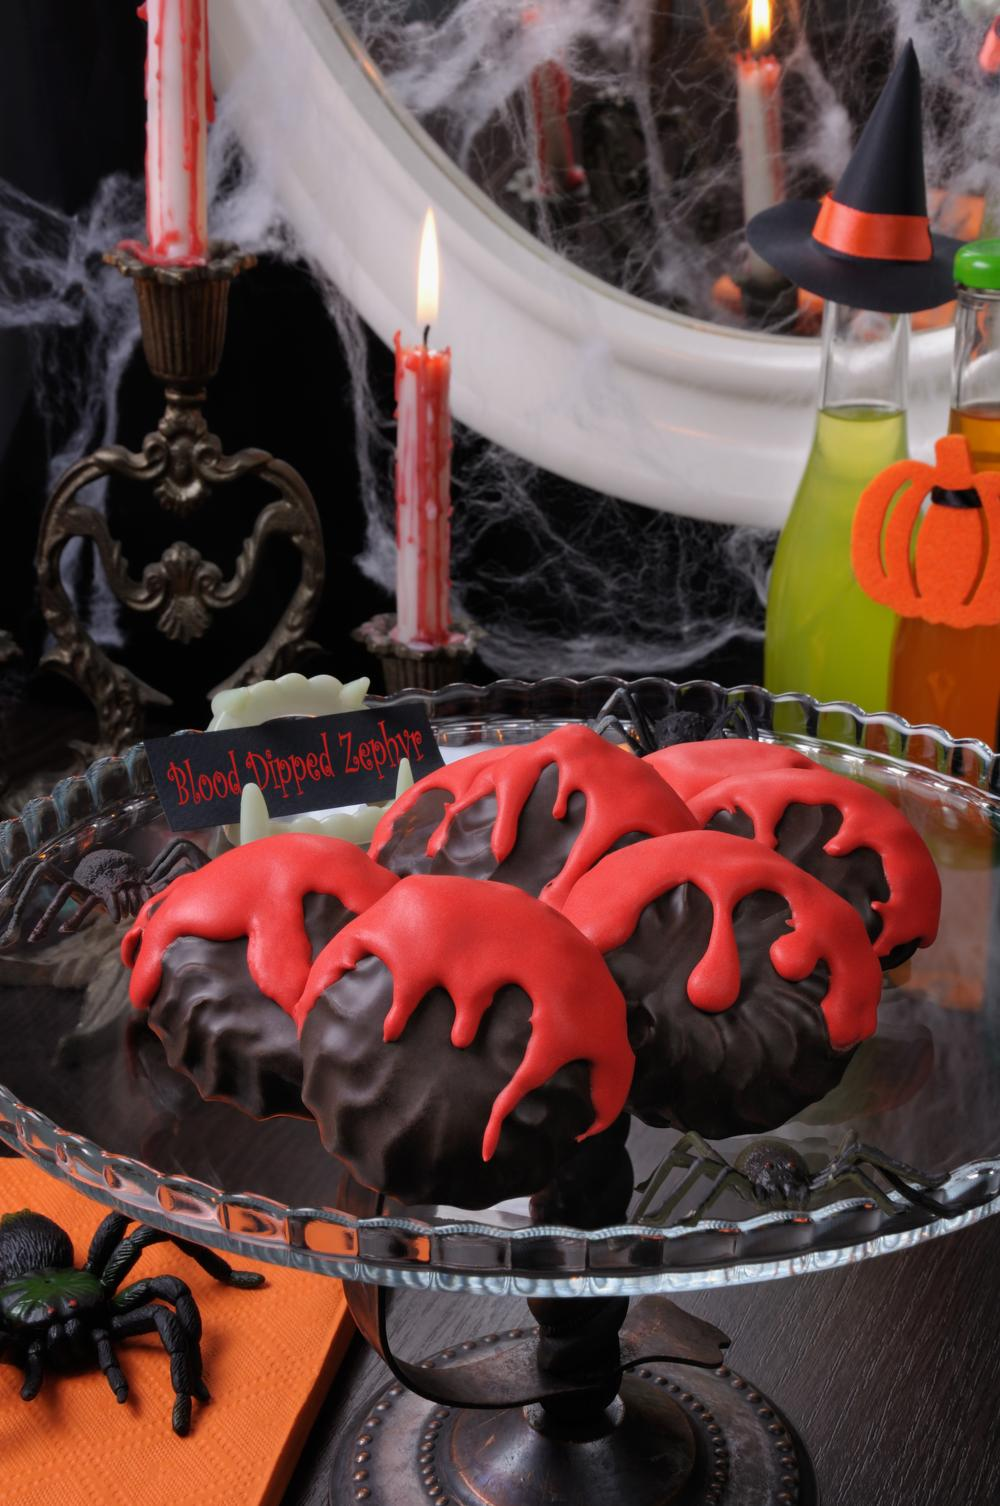 Blood dipped zephyr finger foods for halloween party